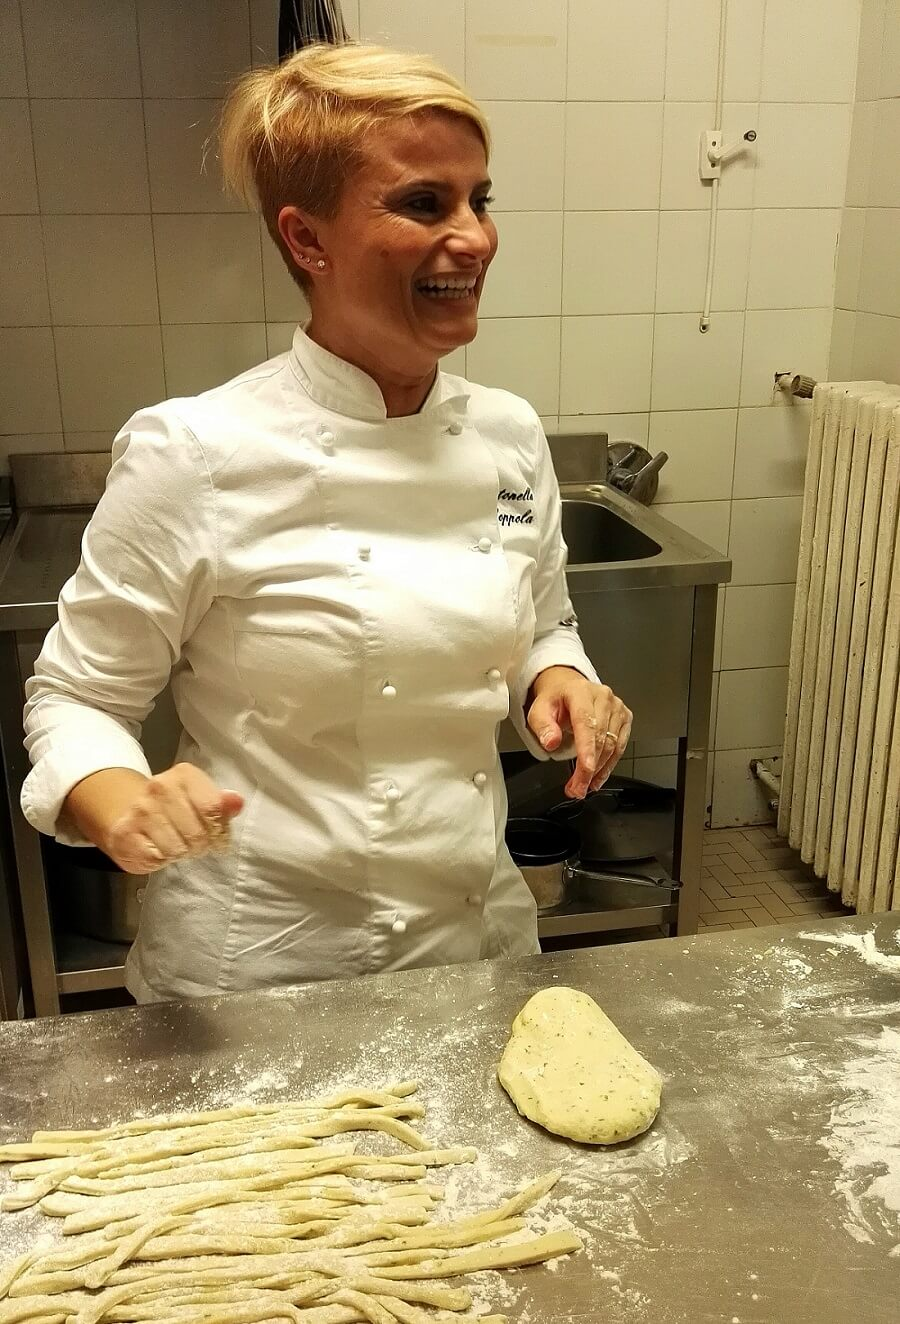 Intervista ad Antonella Coppola, private chef napoletana